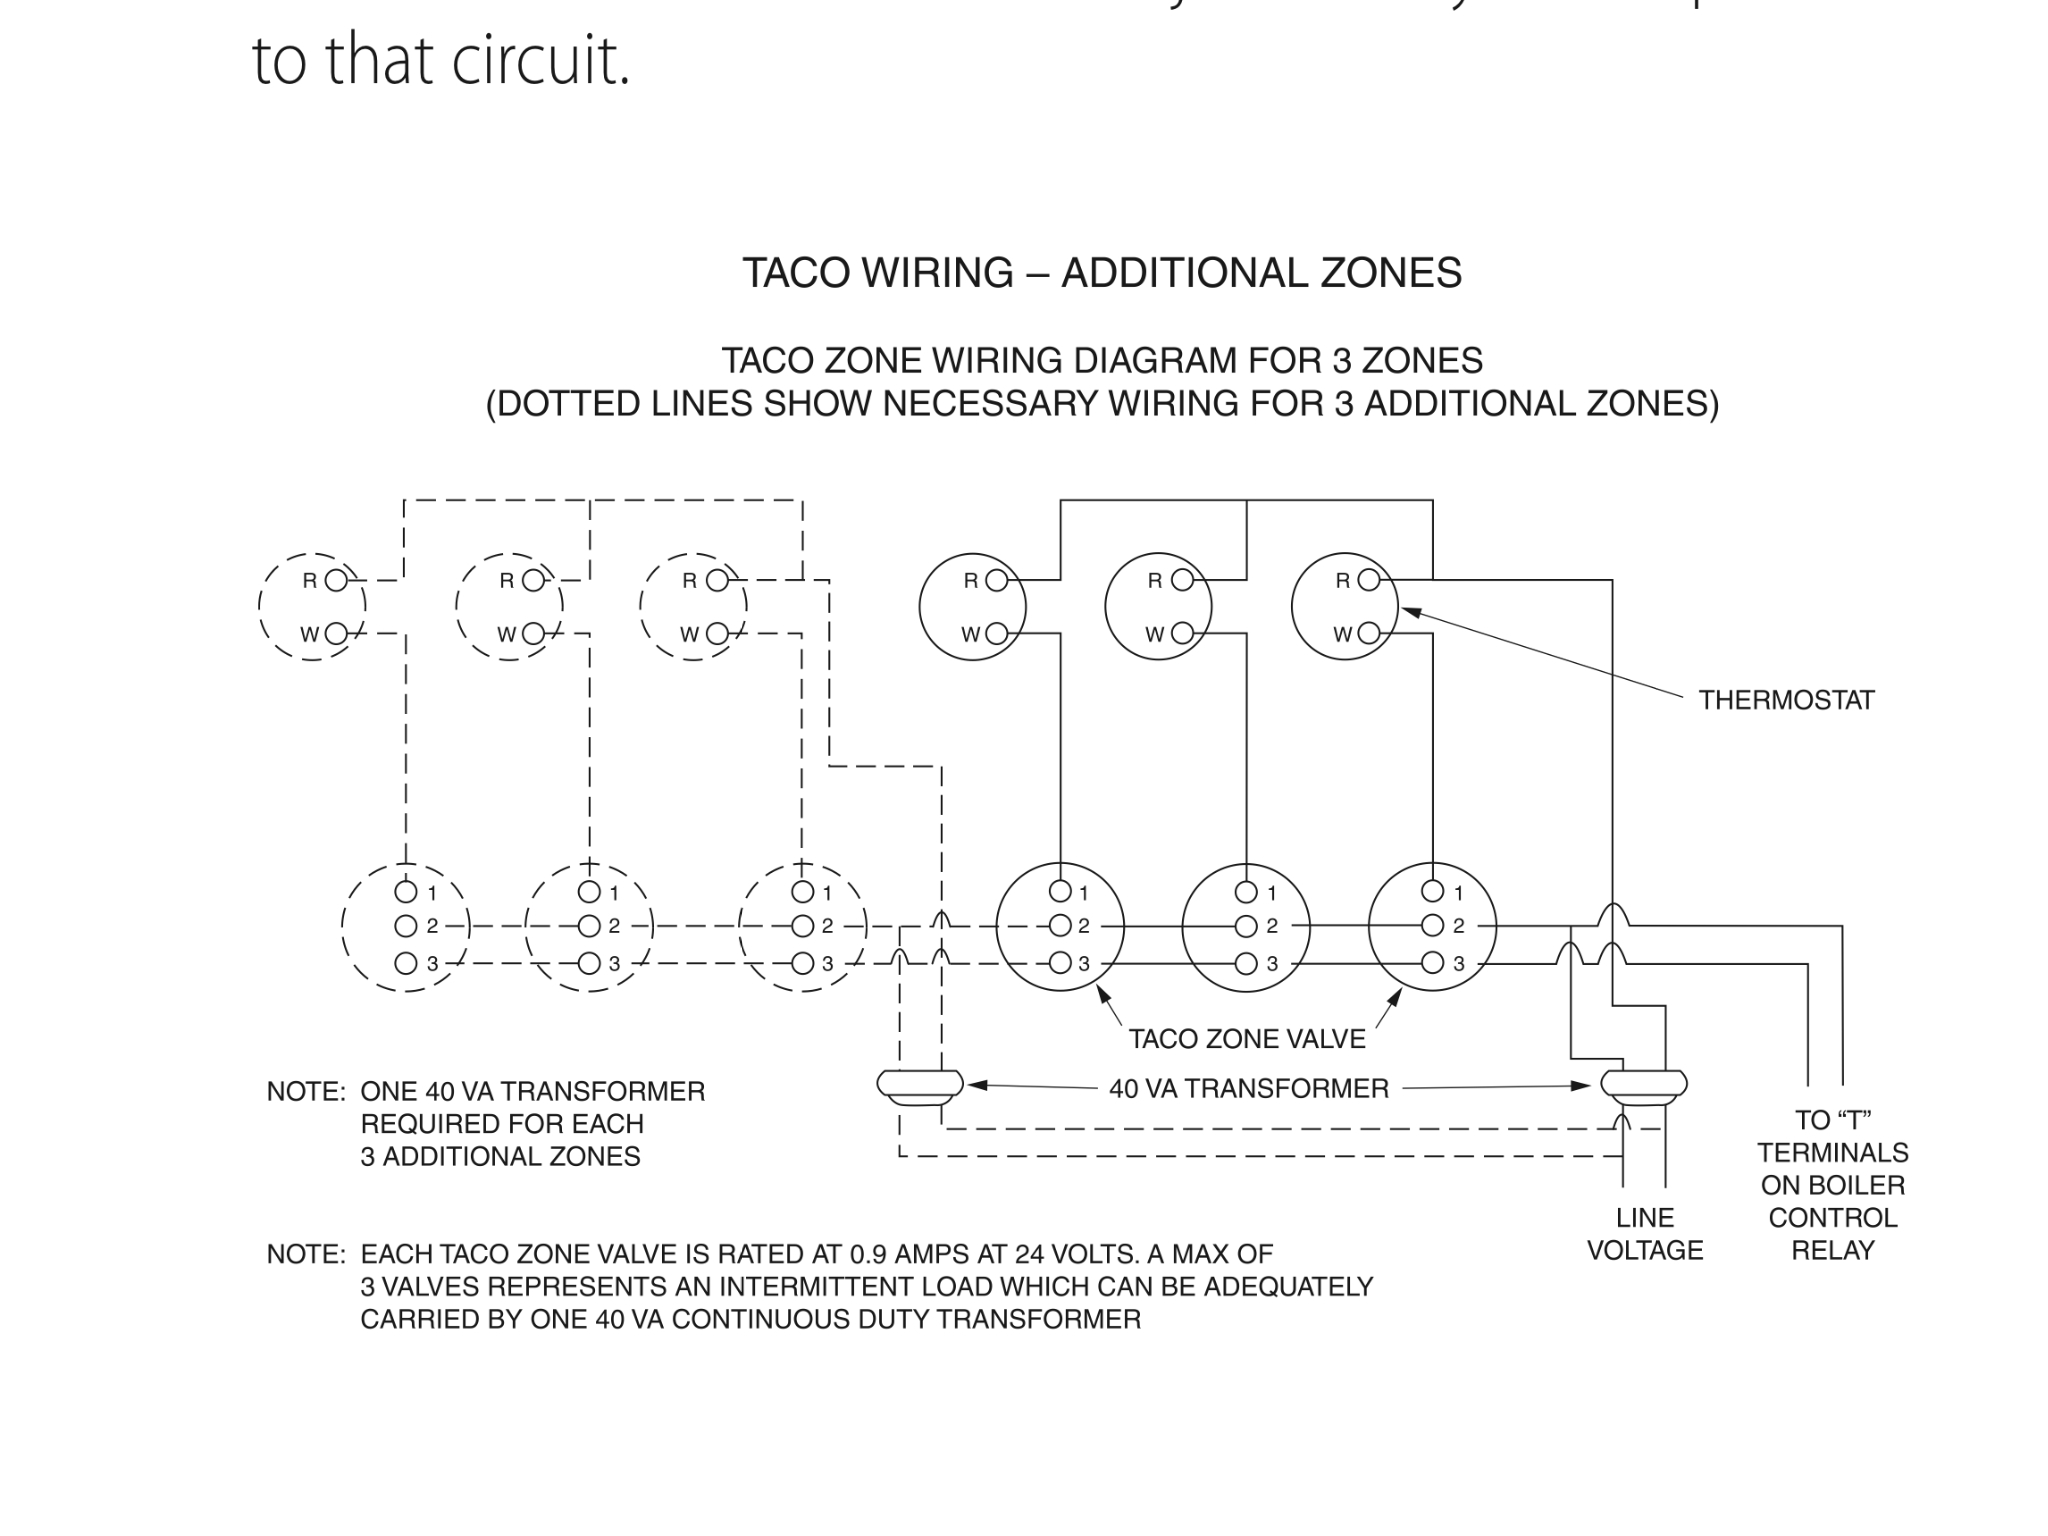 Taco Zone Valve Wiring Diagram 573 | Wiring Diagram - Taco Zone Valve Wiring Diagram